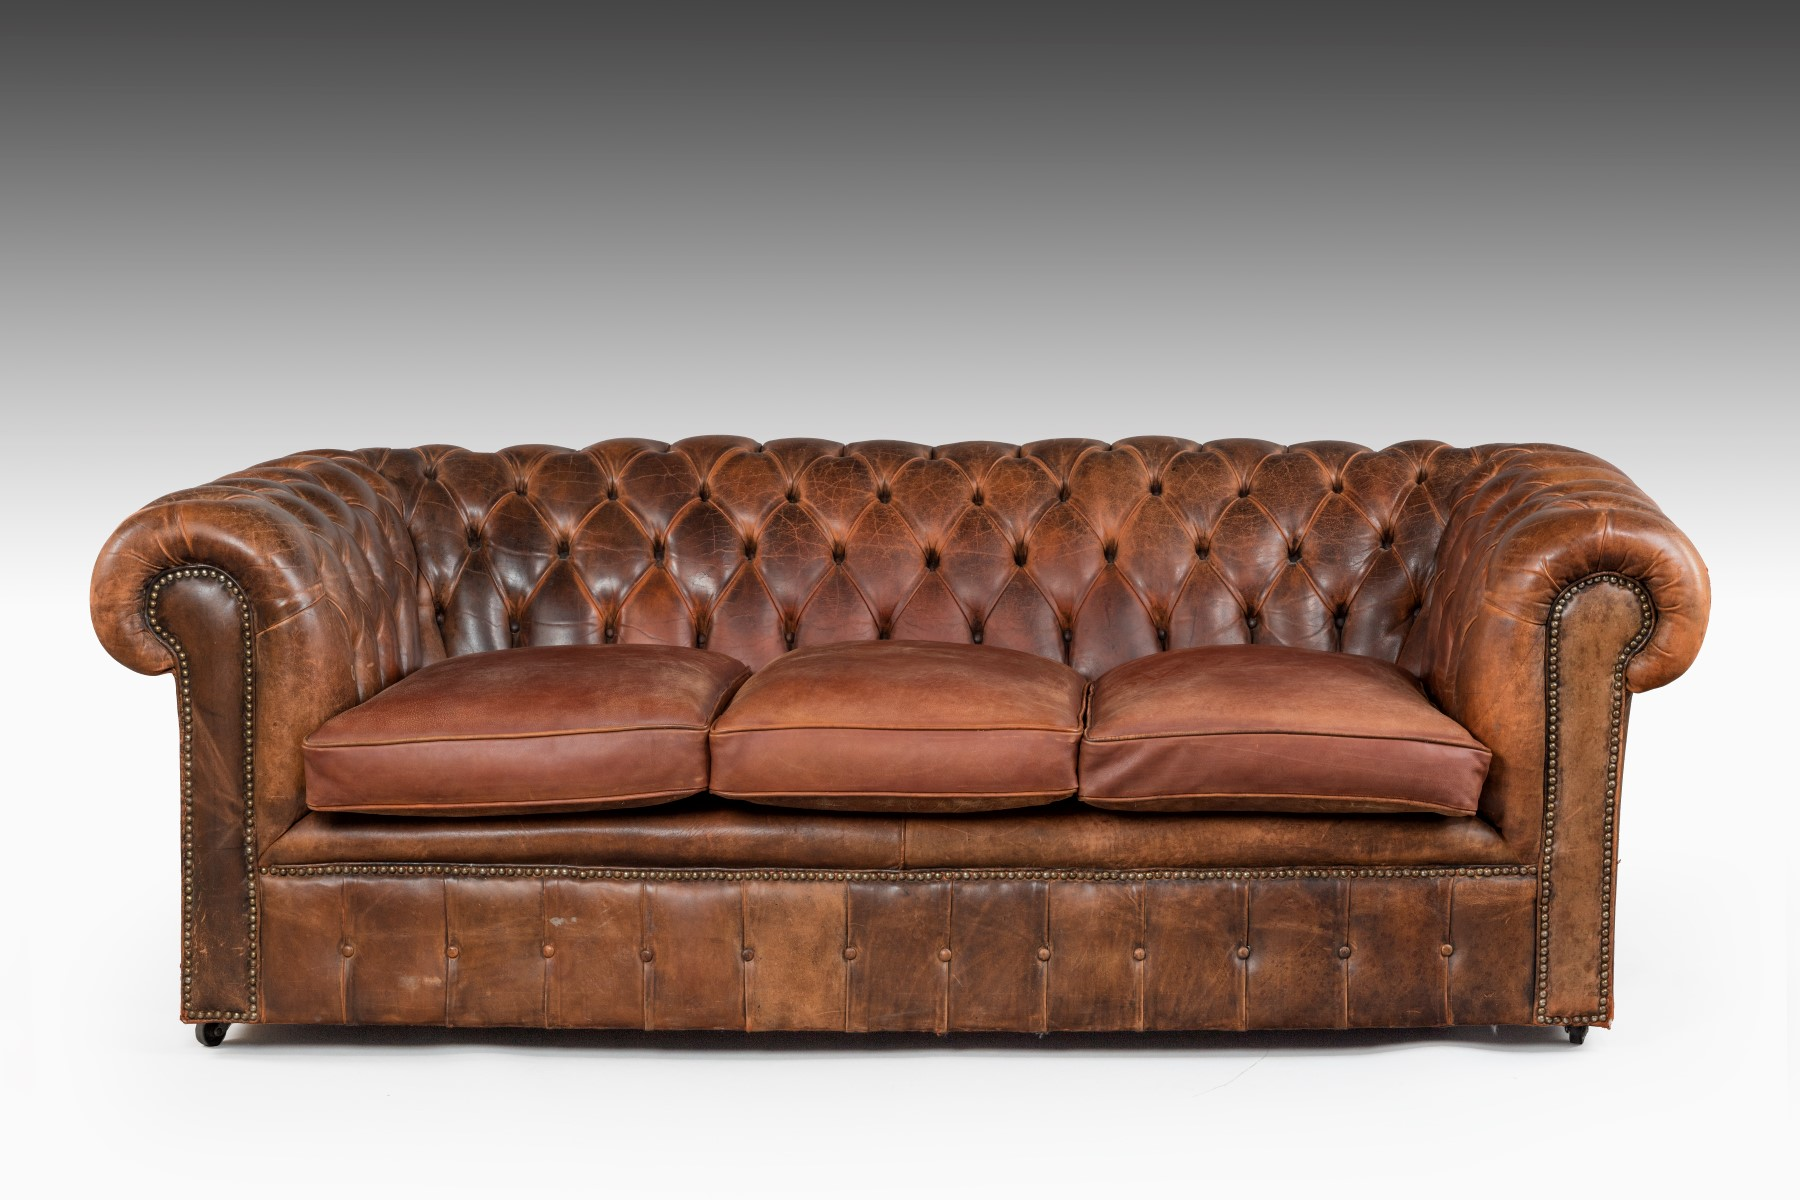 Leather chesterfield sofa uk leather chesterfield summers davis antiques interiors the Leather chesterfield loveseat